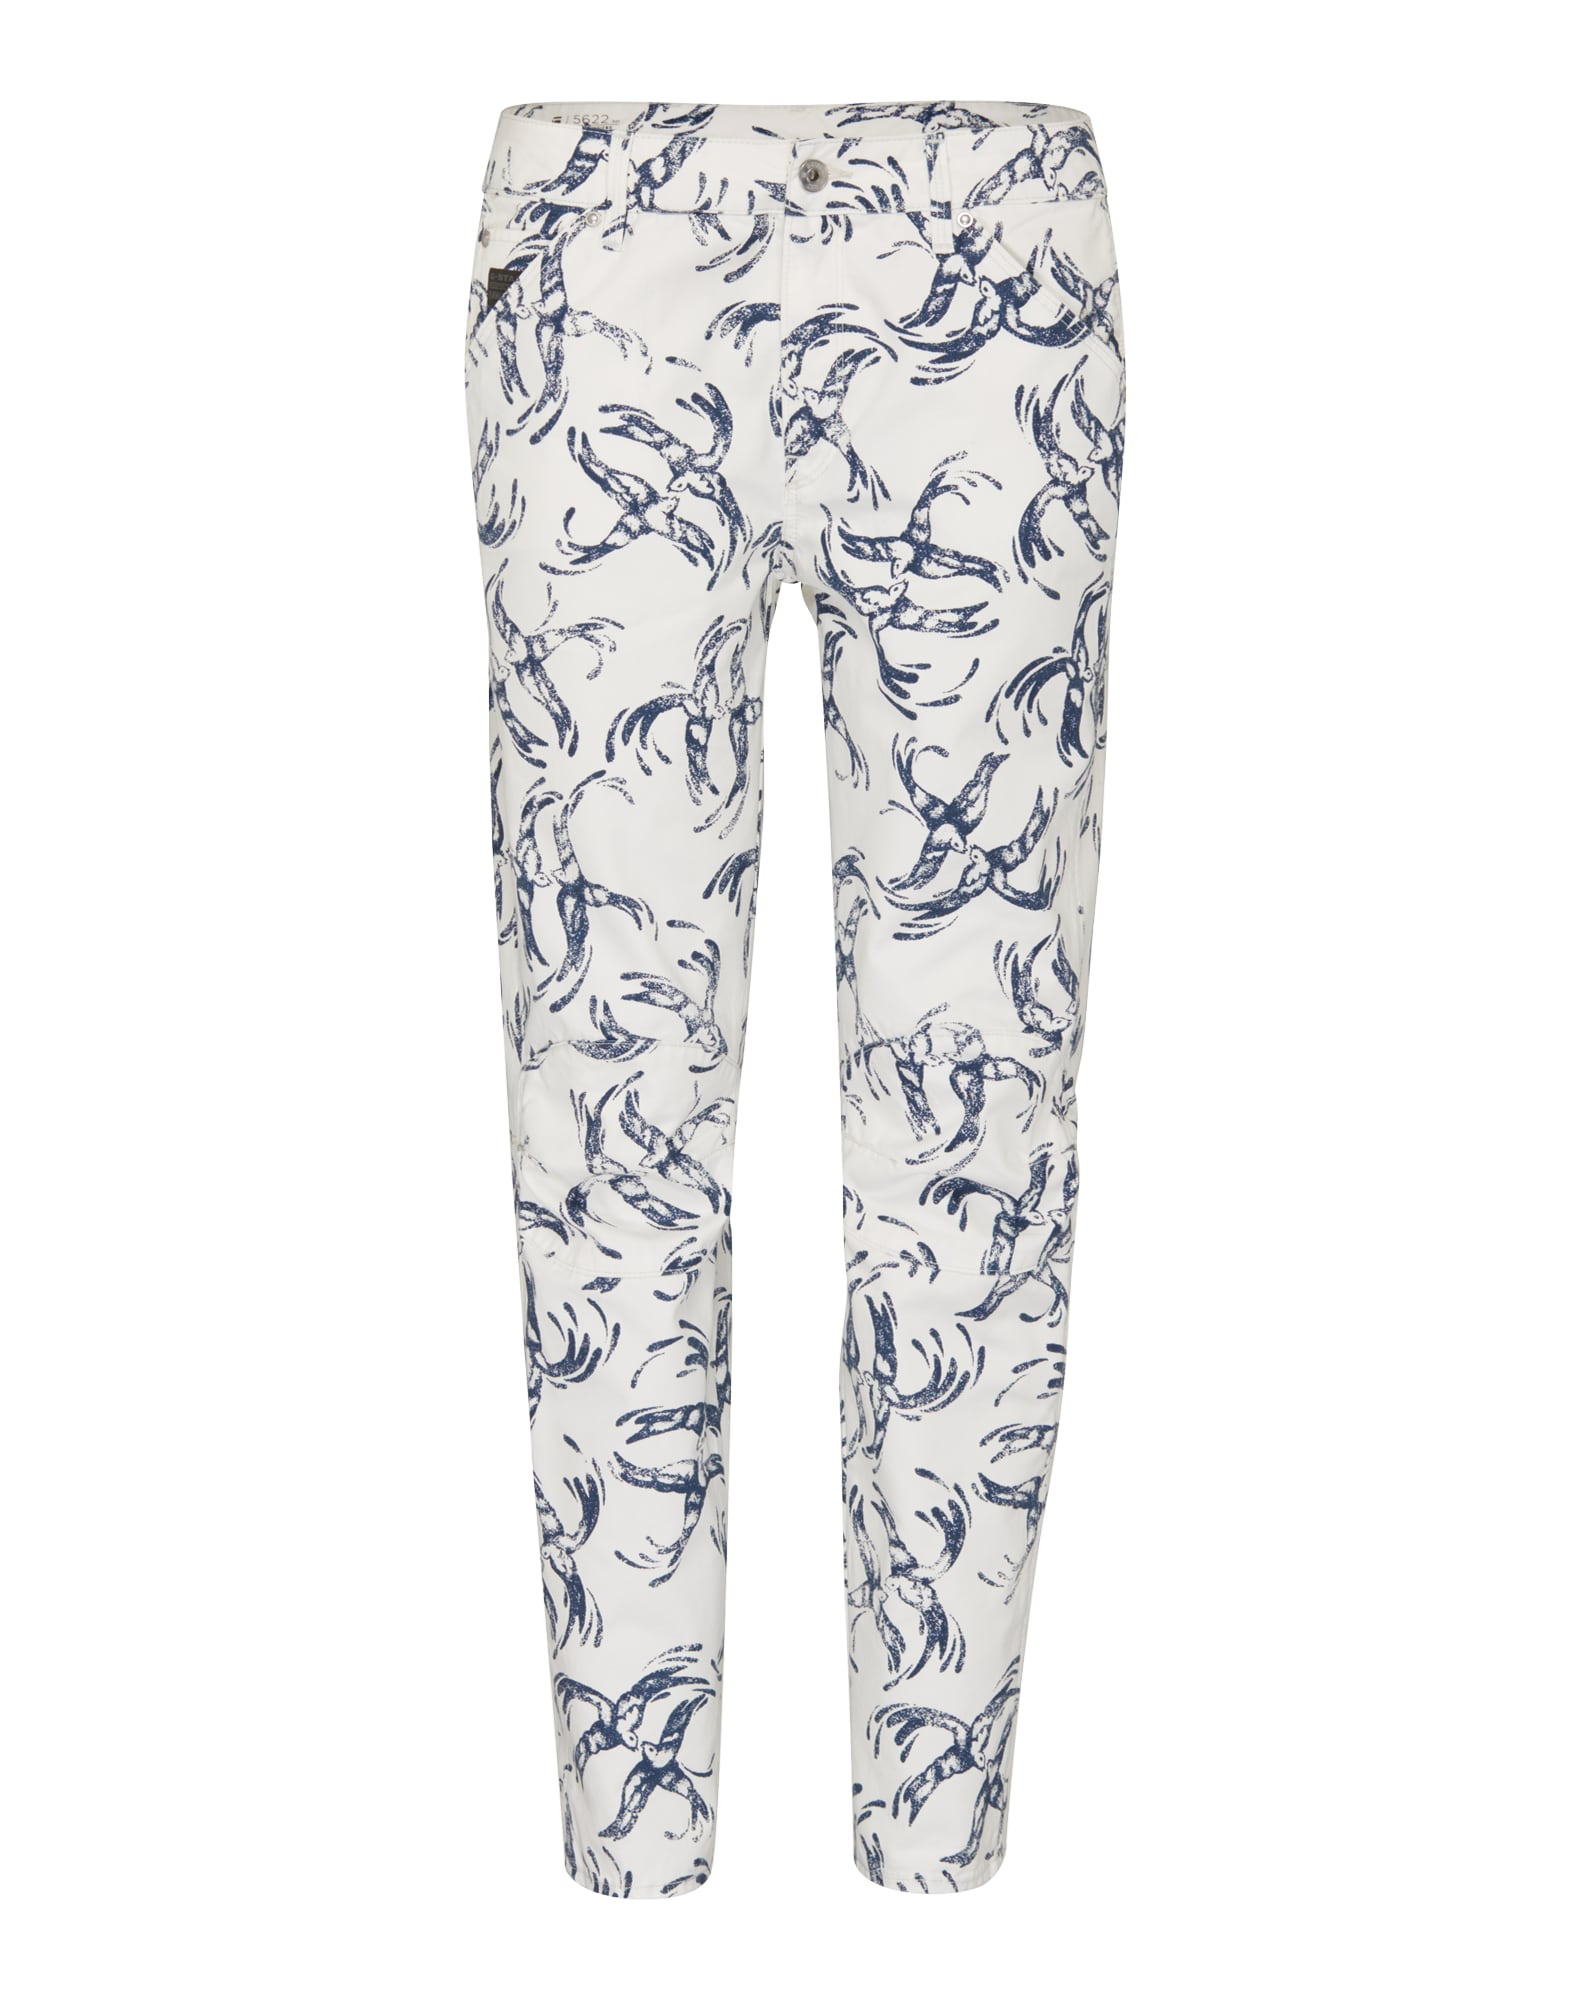 G-STAR RAW Dames Jeans 5622 Elwood Uncovered saffier wit